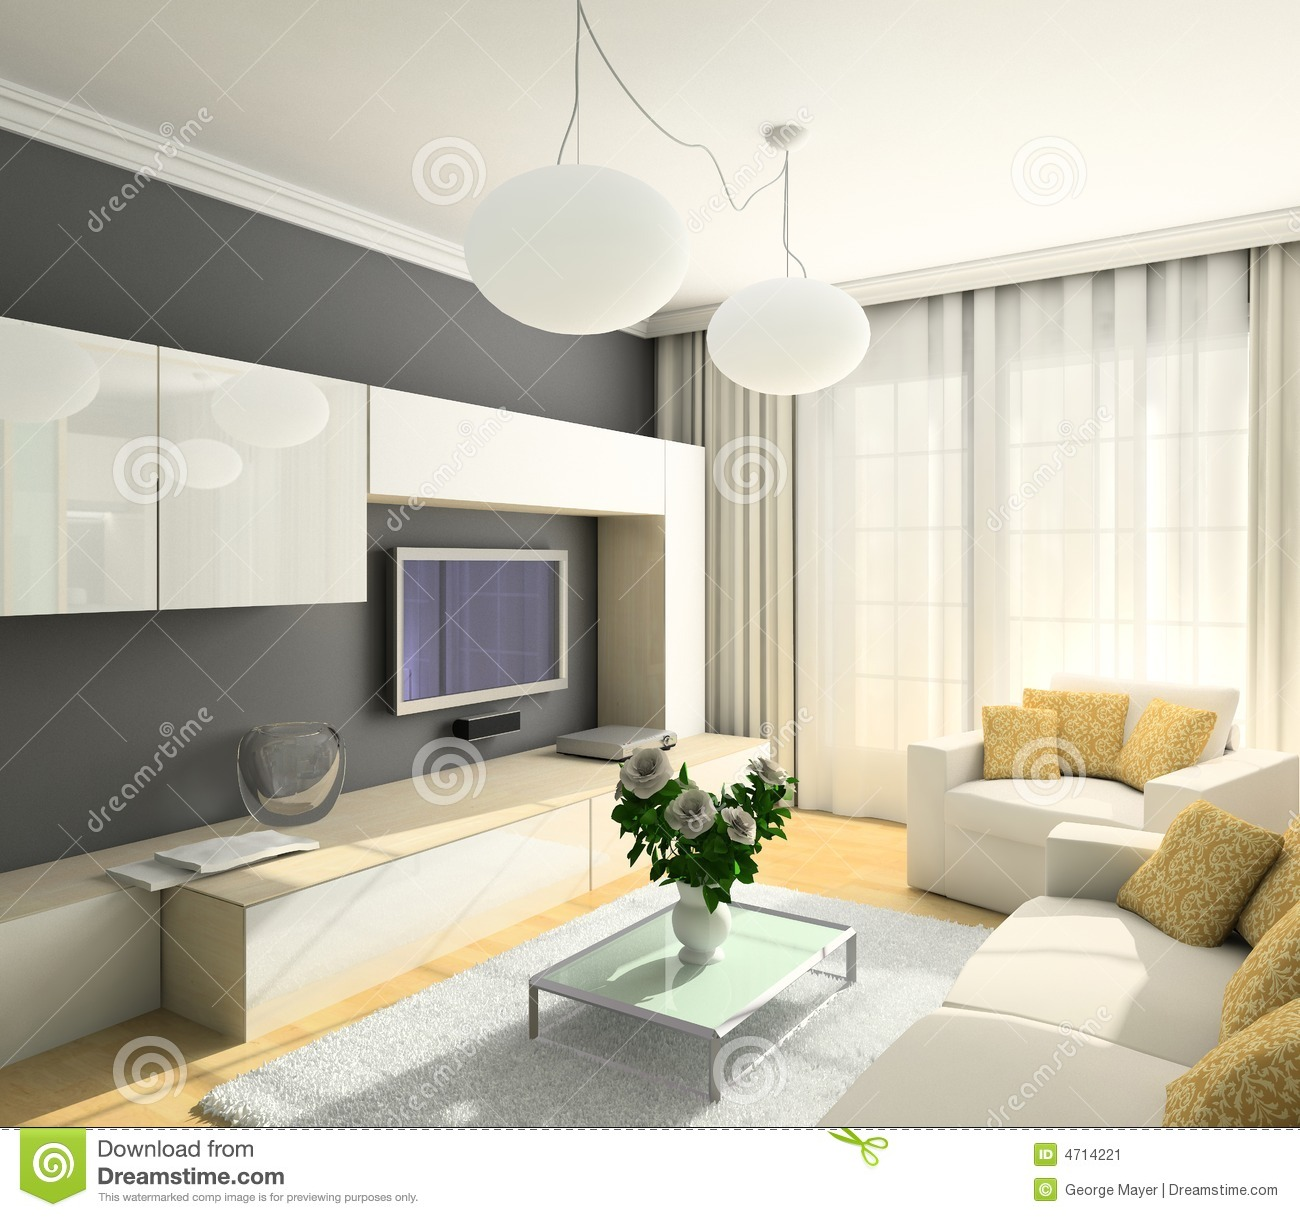 3d render modern interior of living